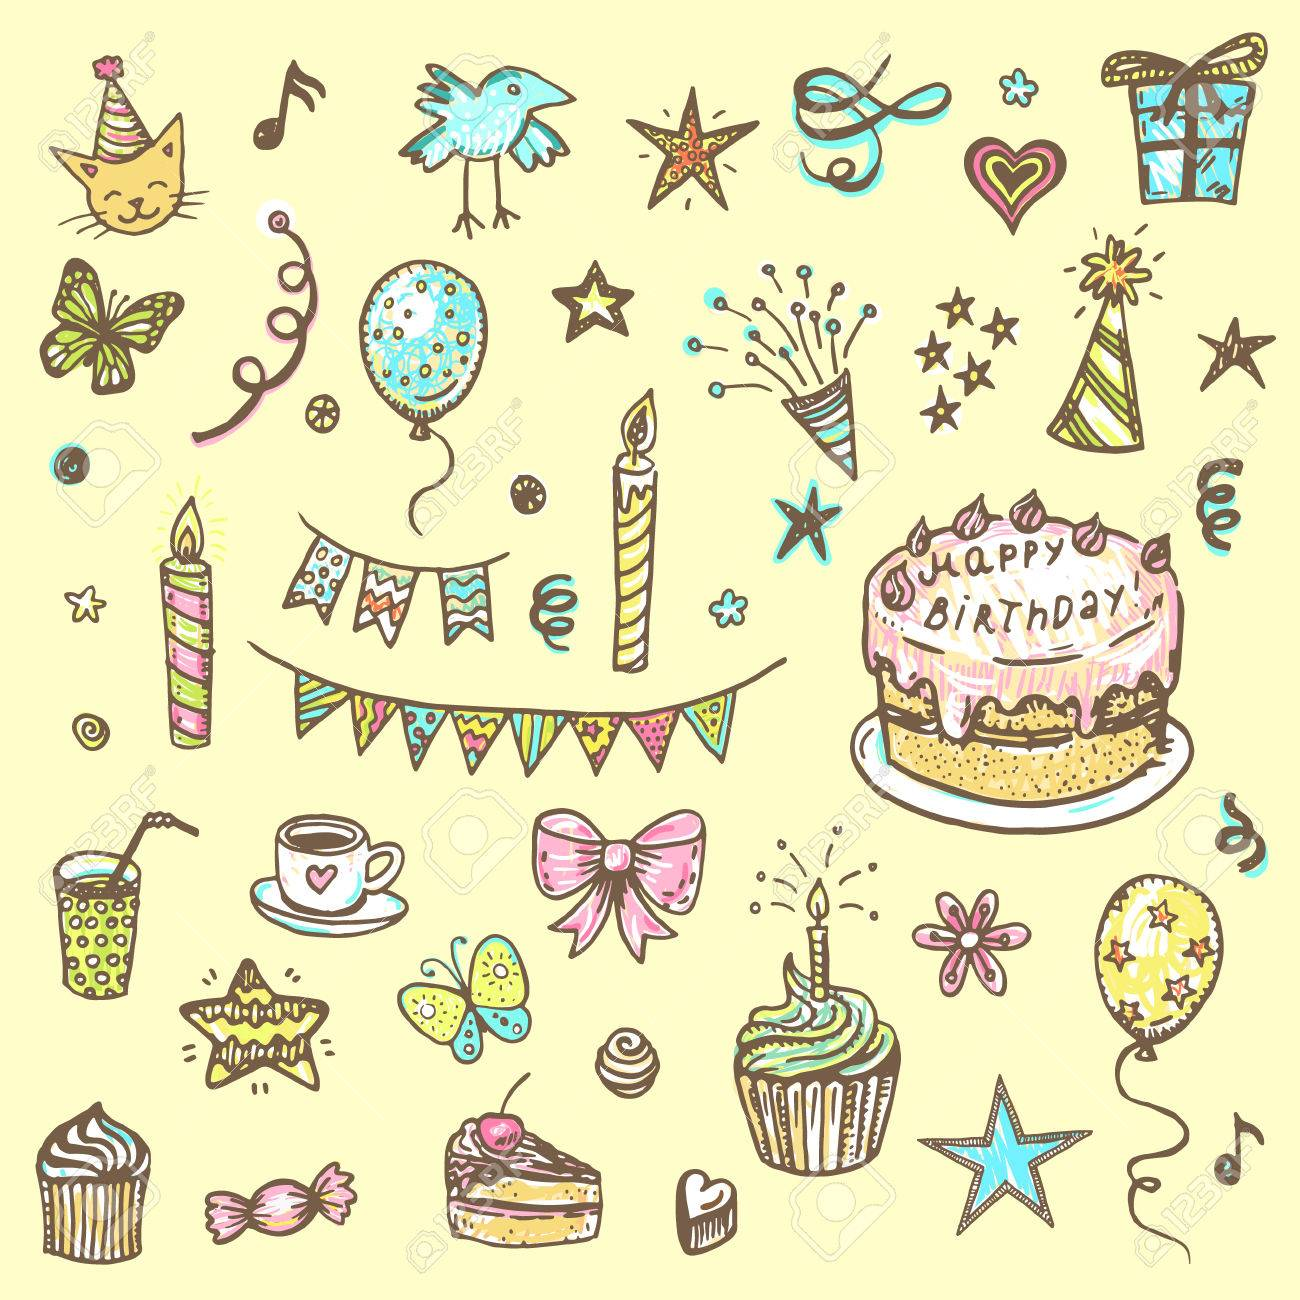 Birthday Elements Hand Drawn Set With Cake Balloons Gift And Festive Attributes